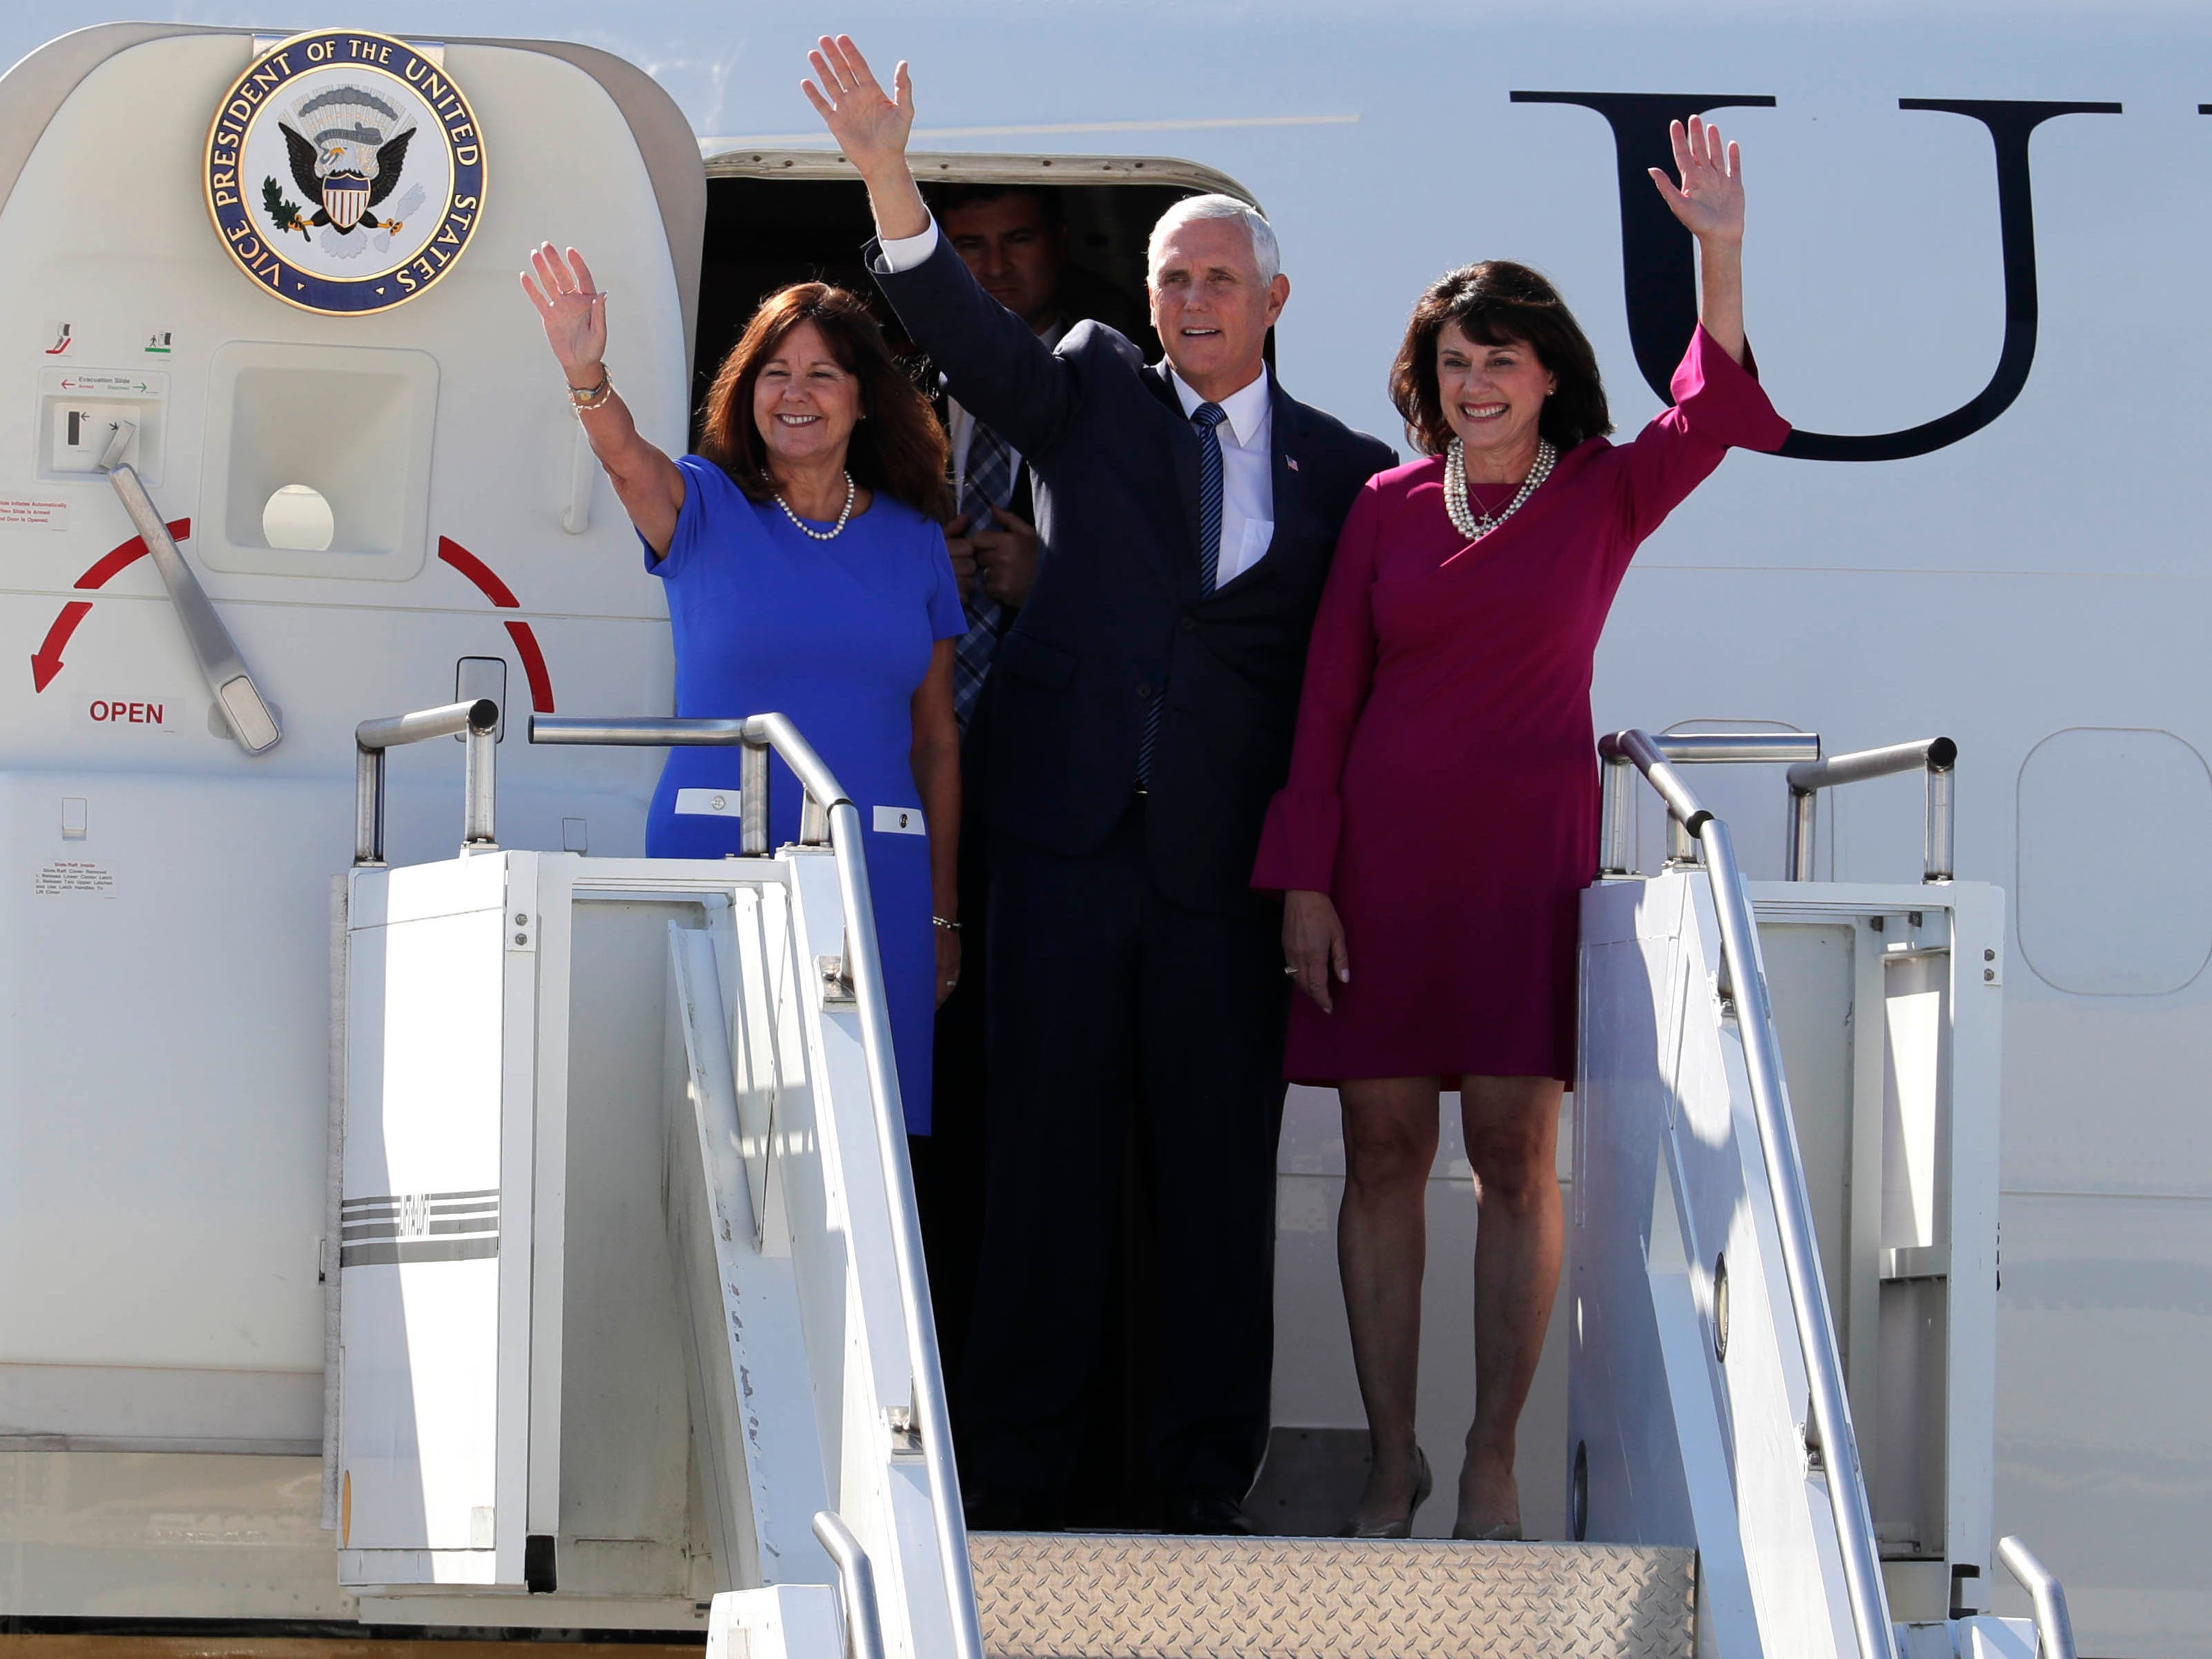 Vice President Mike Pence and his wife Karen (left) appear with Republican Senate candidate Leah Vukmir during a stop in Milwaukee Aug. 30.